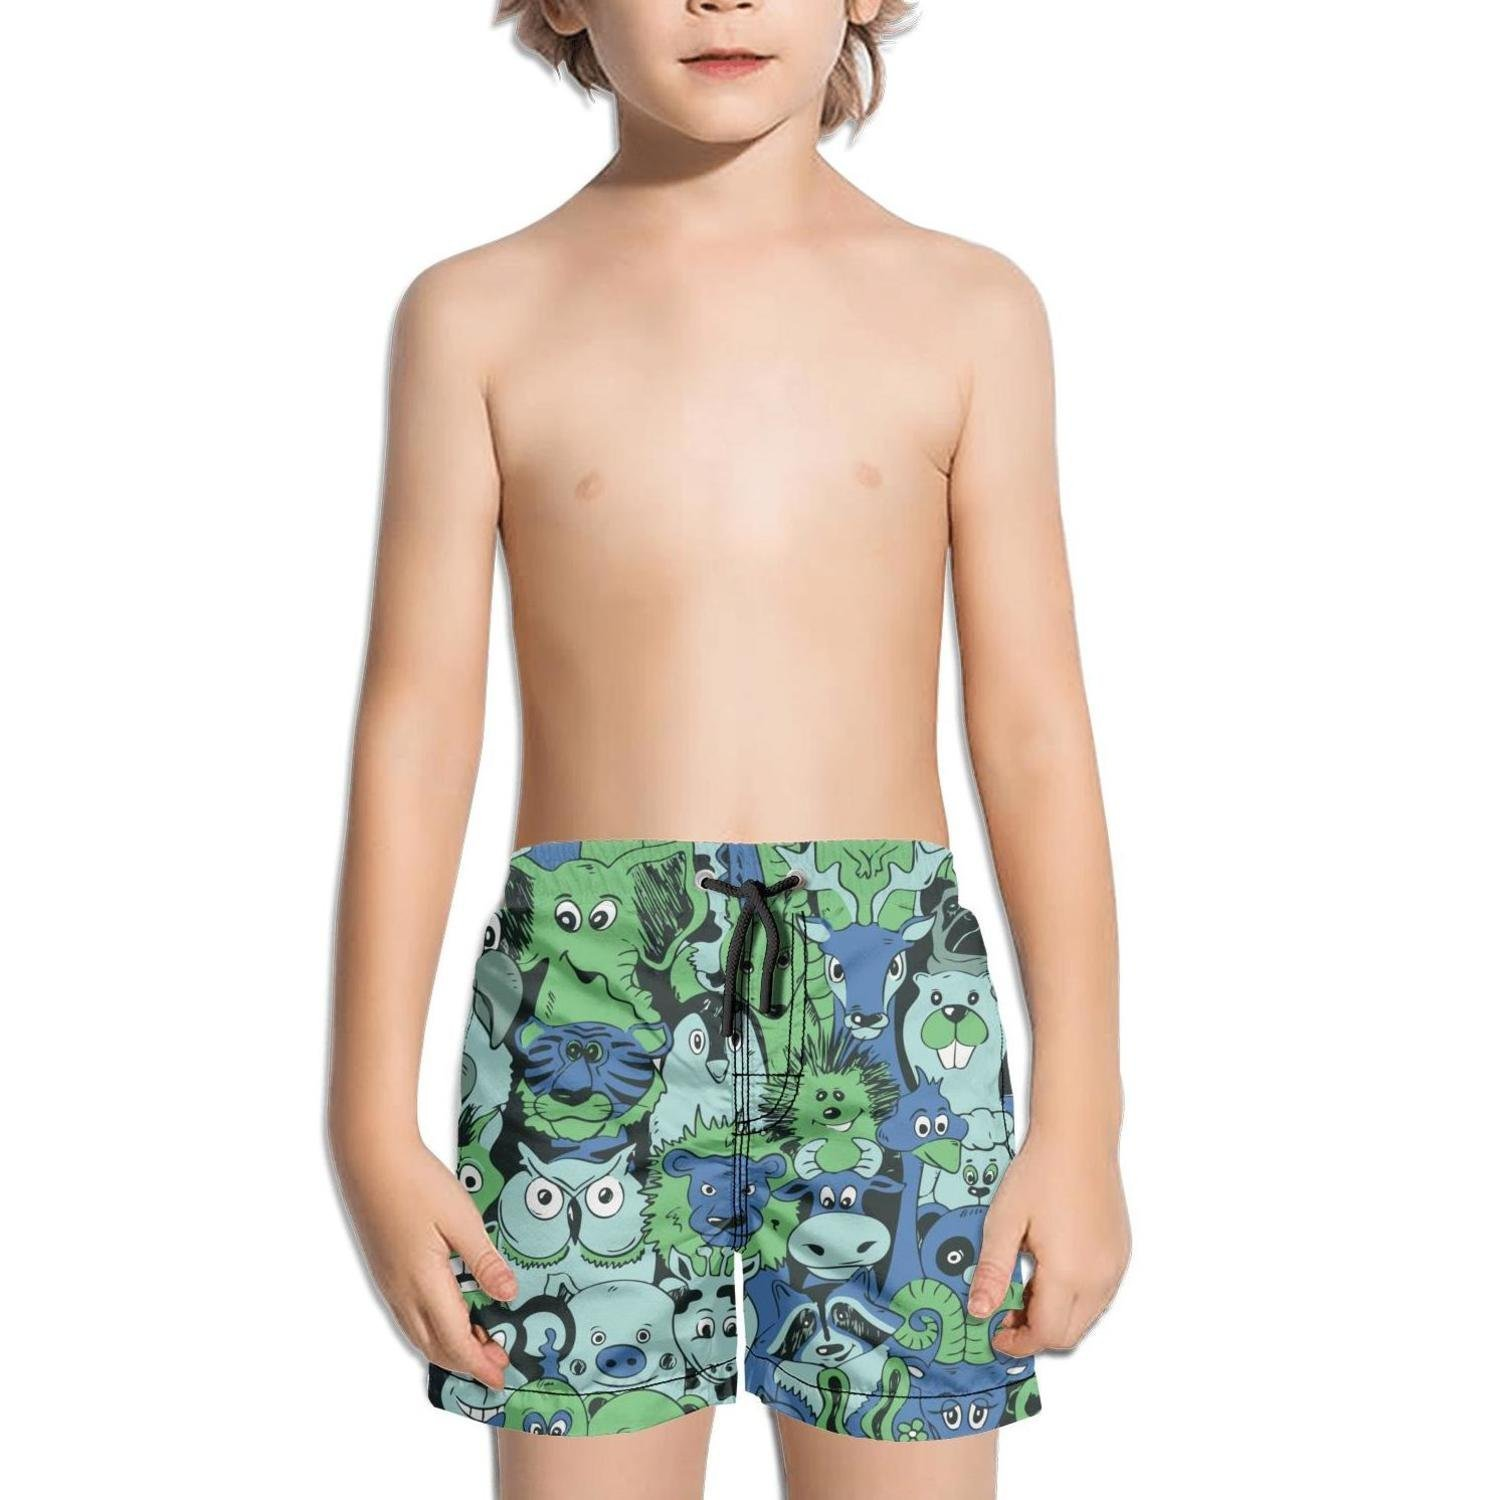 Ouxioaz Boys Swim Trunk Colorful Animals Lion Hedgehog Beach Board Shorts